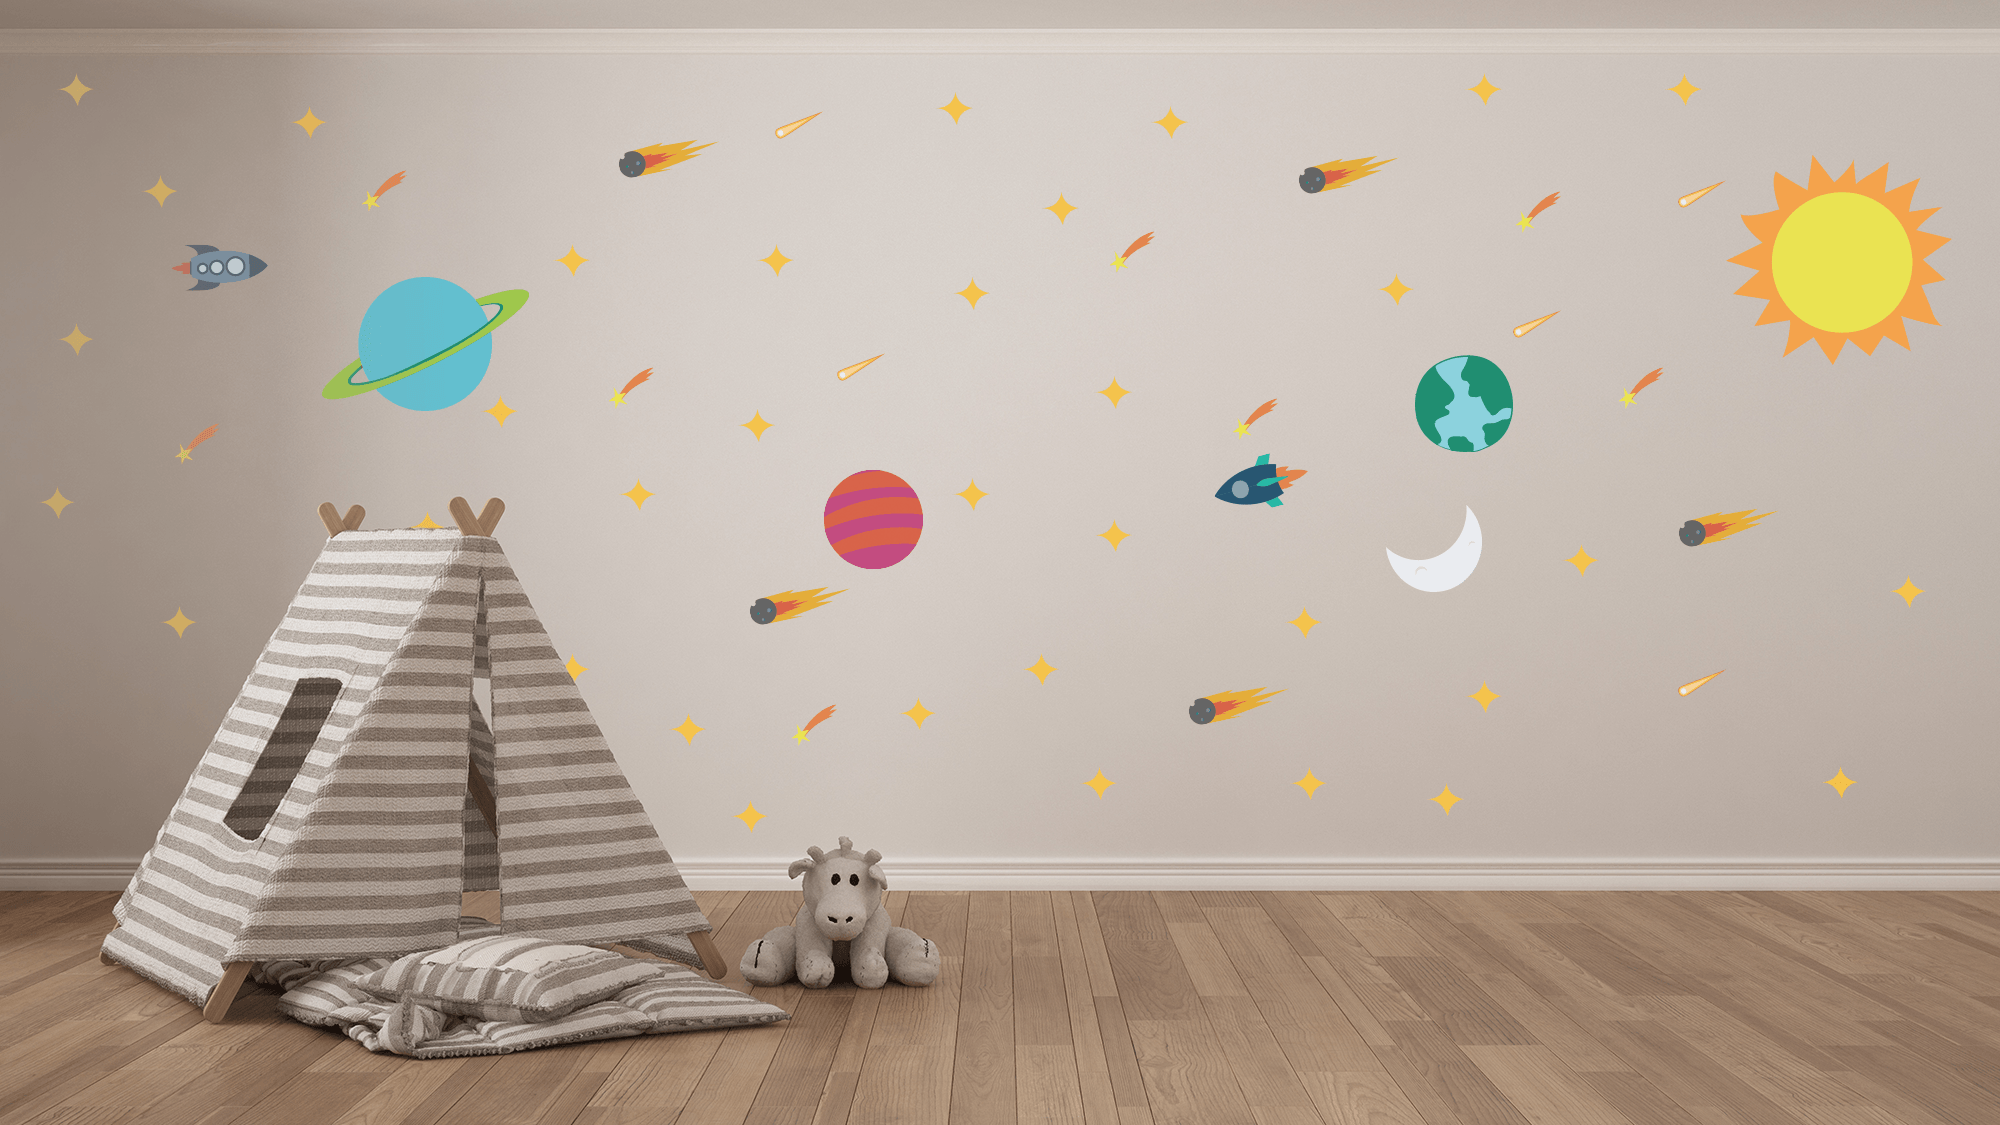 Solar System Wall Art - Vinyl Space, Planets, Galaxy Wall Decals For Nurseries, Children's Rooms, And Home Decor